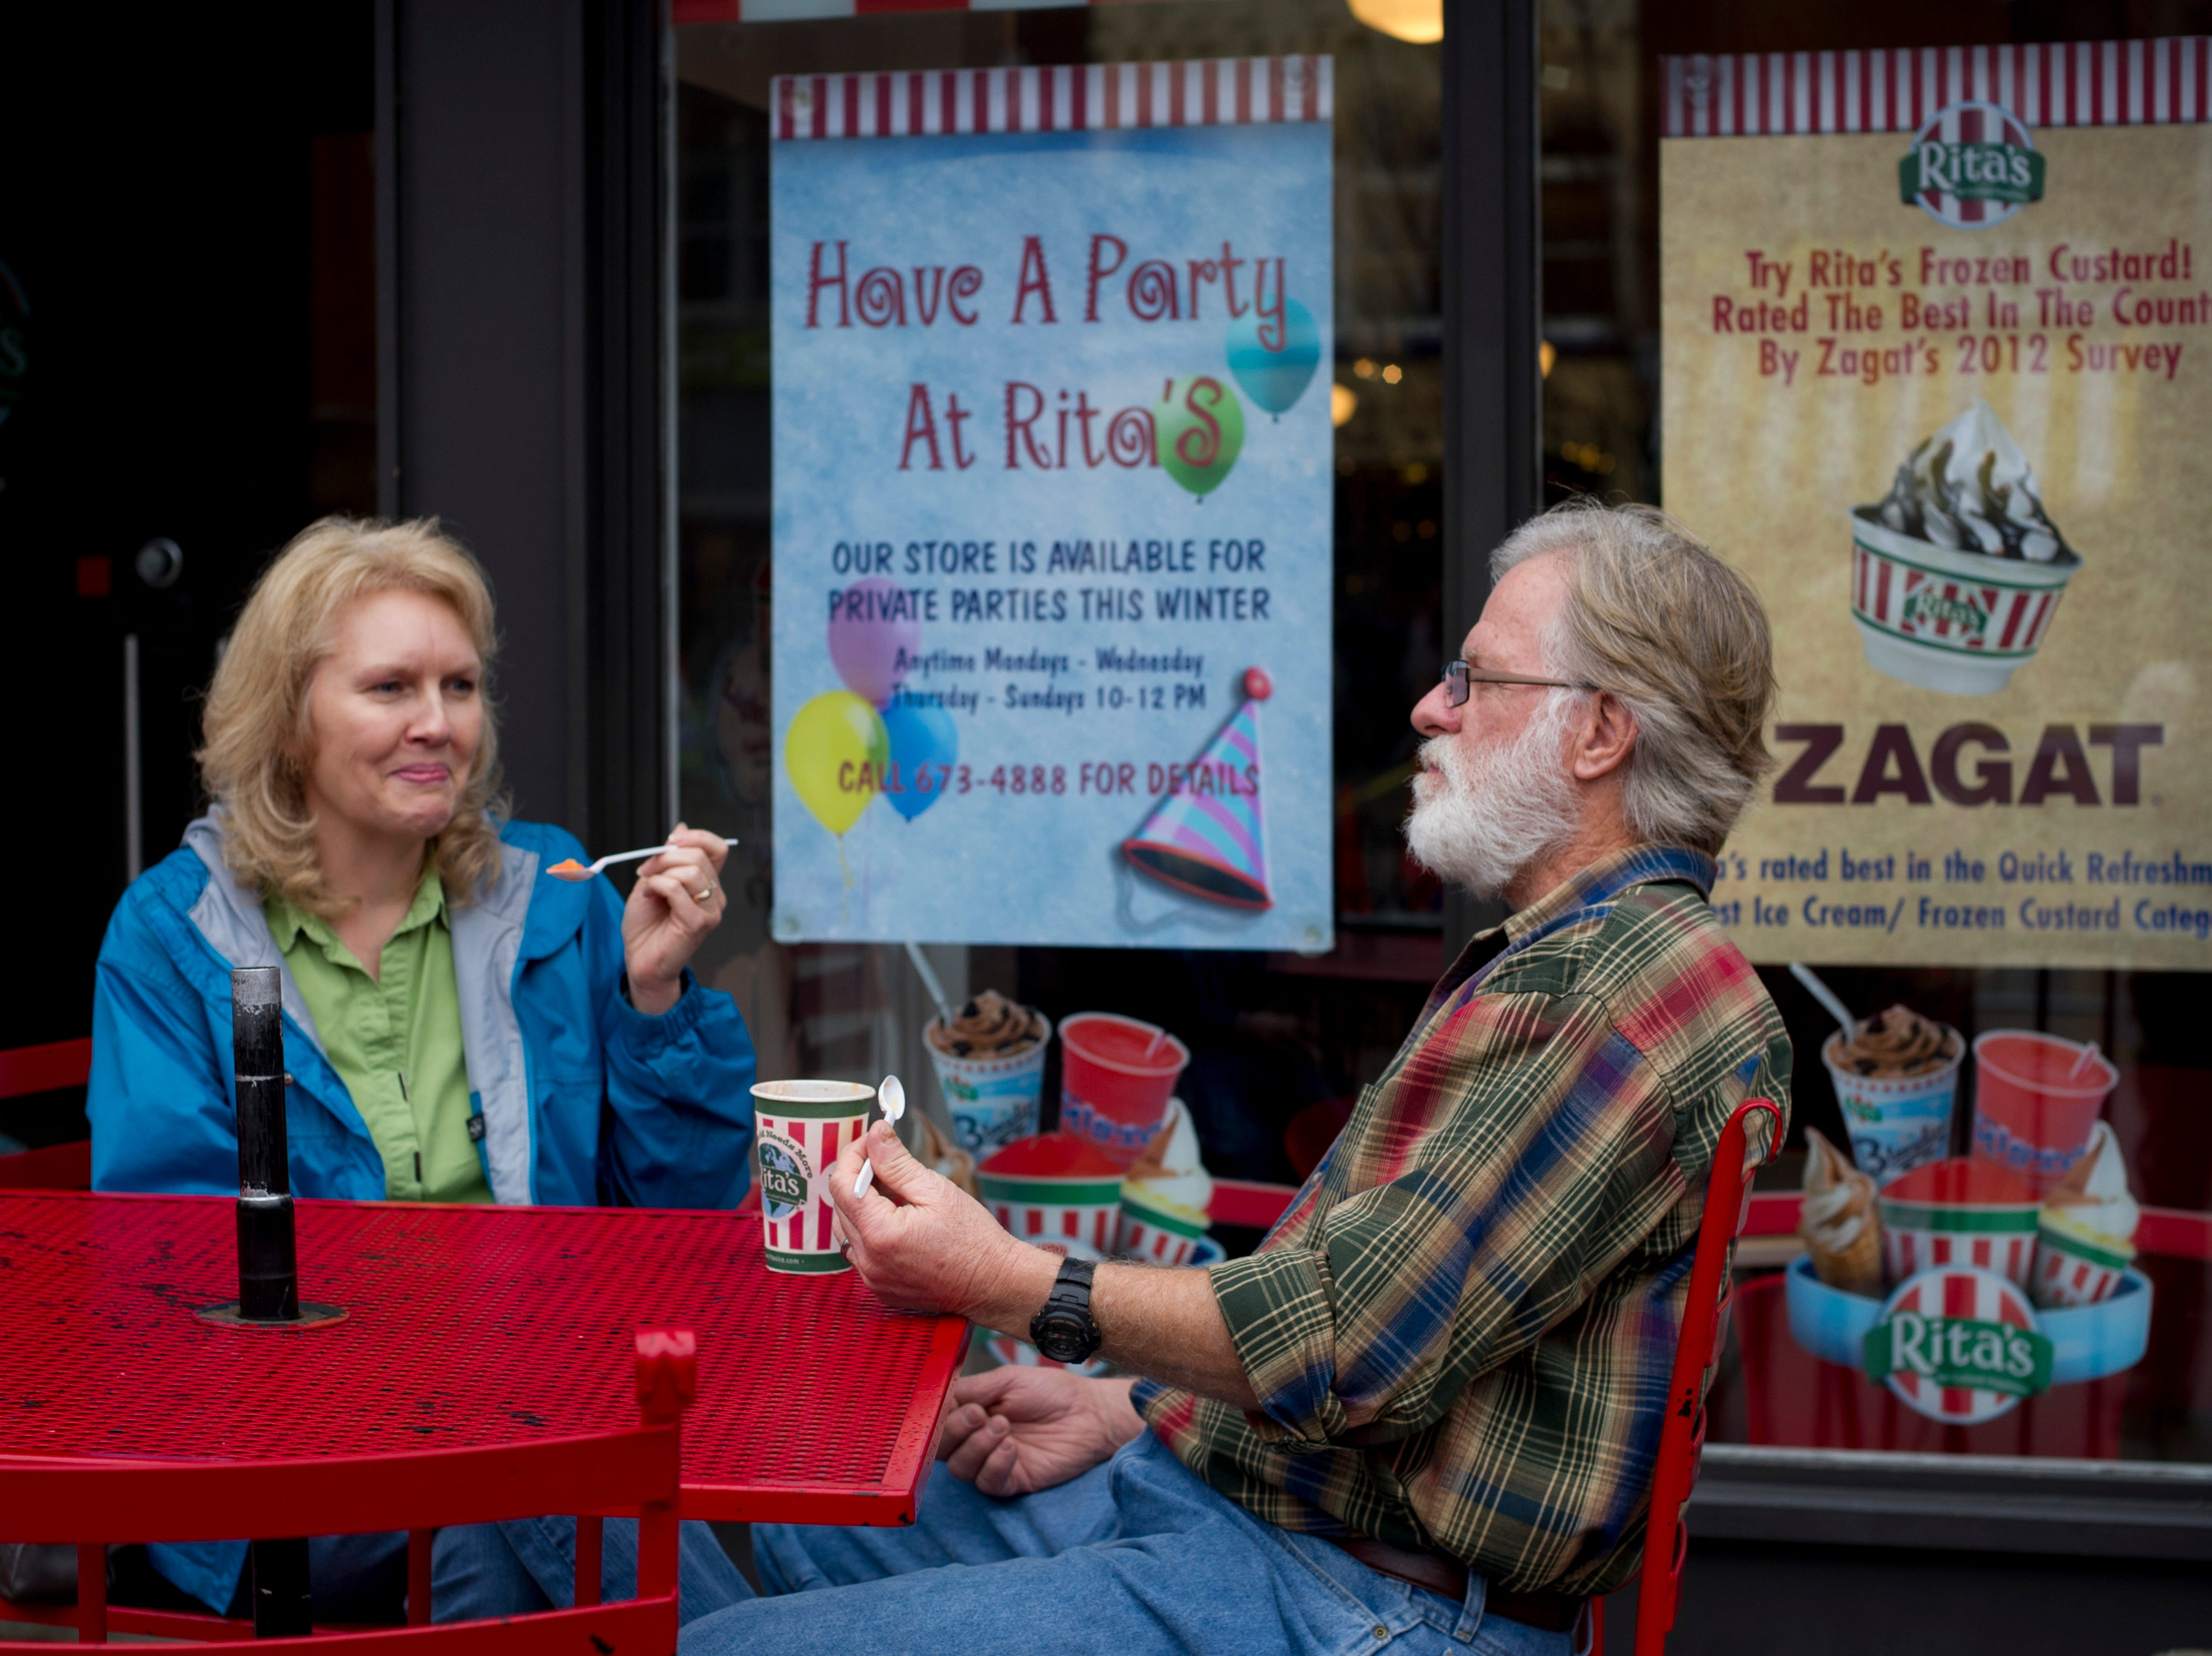 Lisa Bean and her husband Ron Bean take in the unseasonably warm weather with a cup of Italian Ice outside of Rita's at Market Square on Sunday, January 13, 2013.